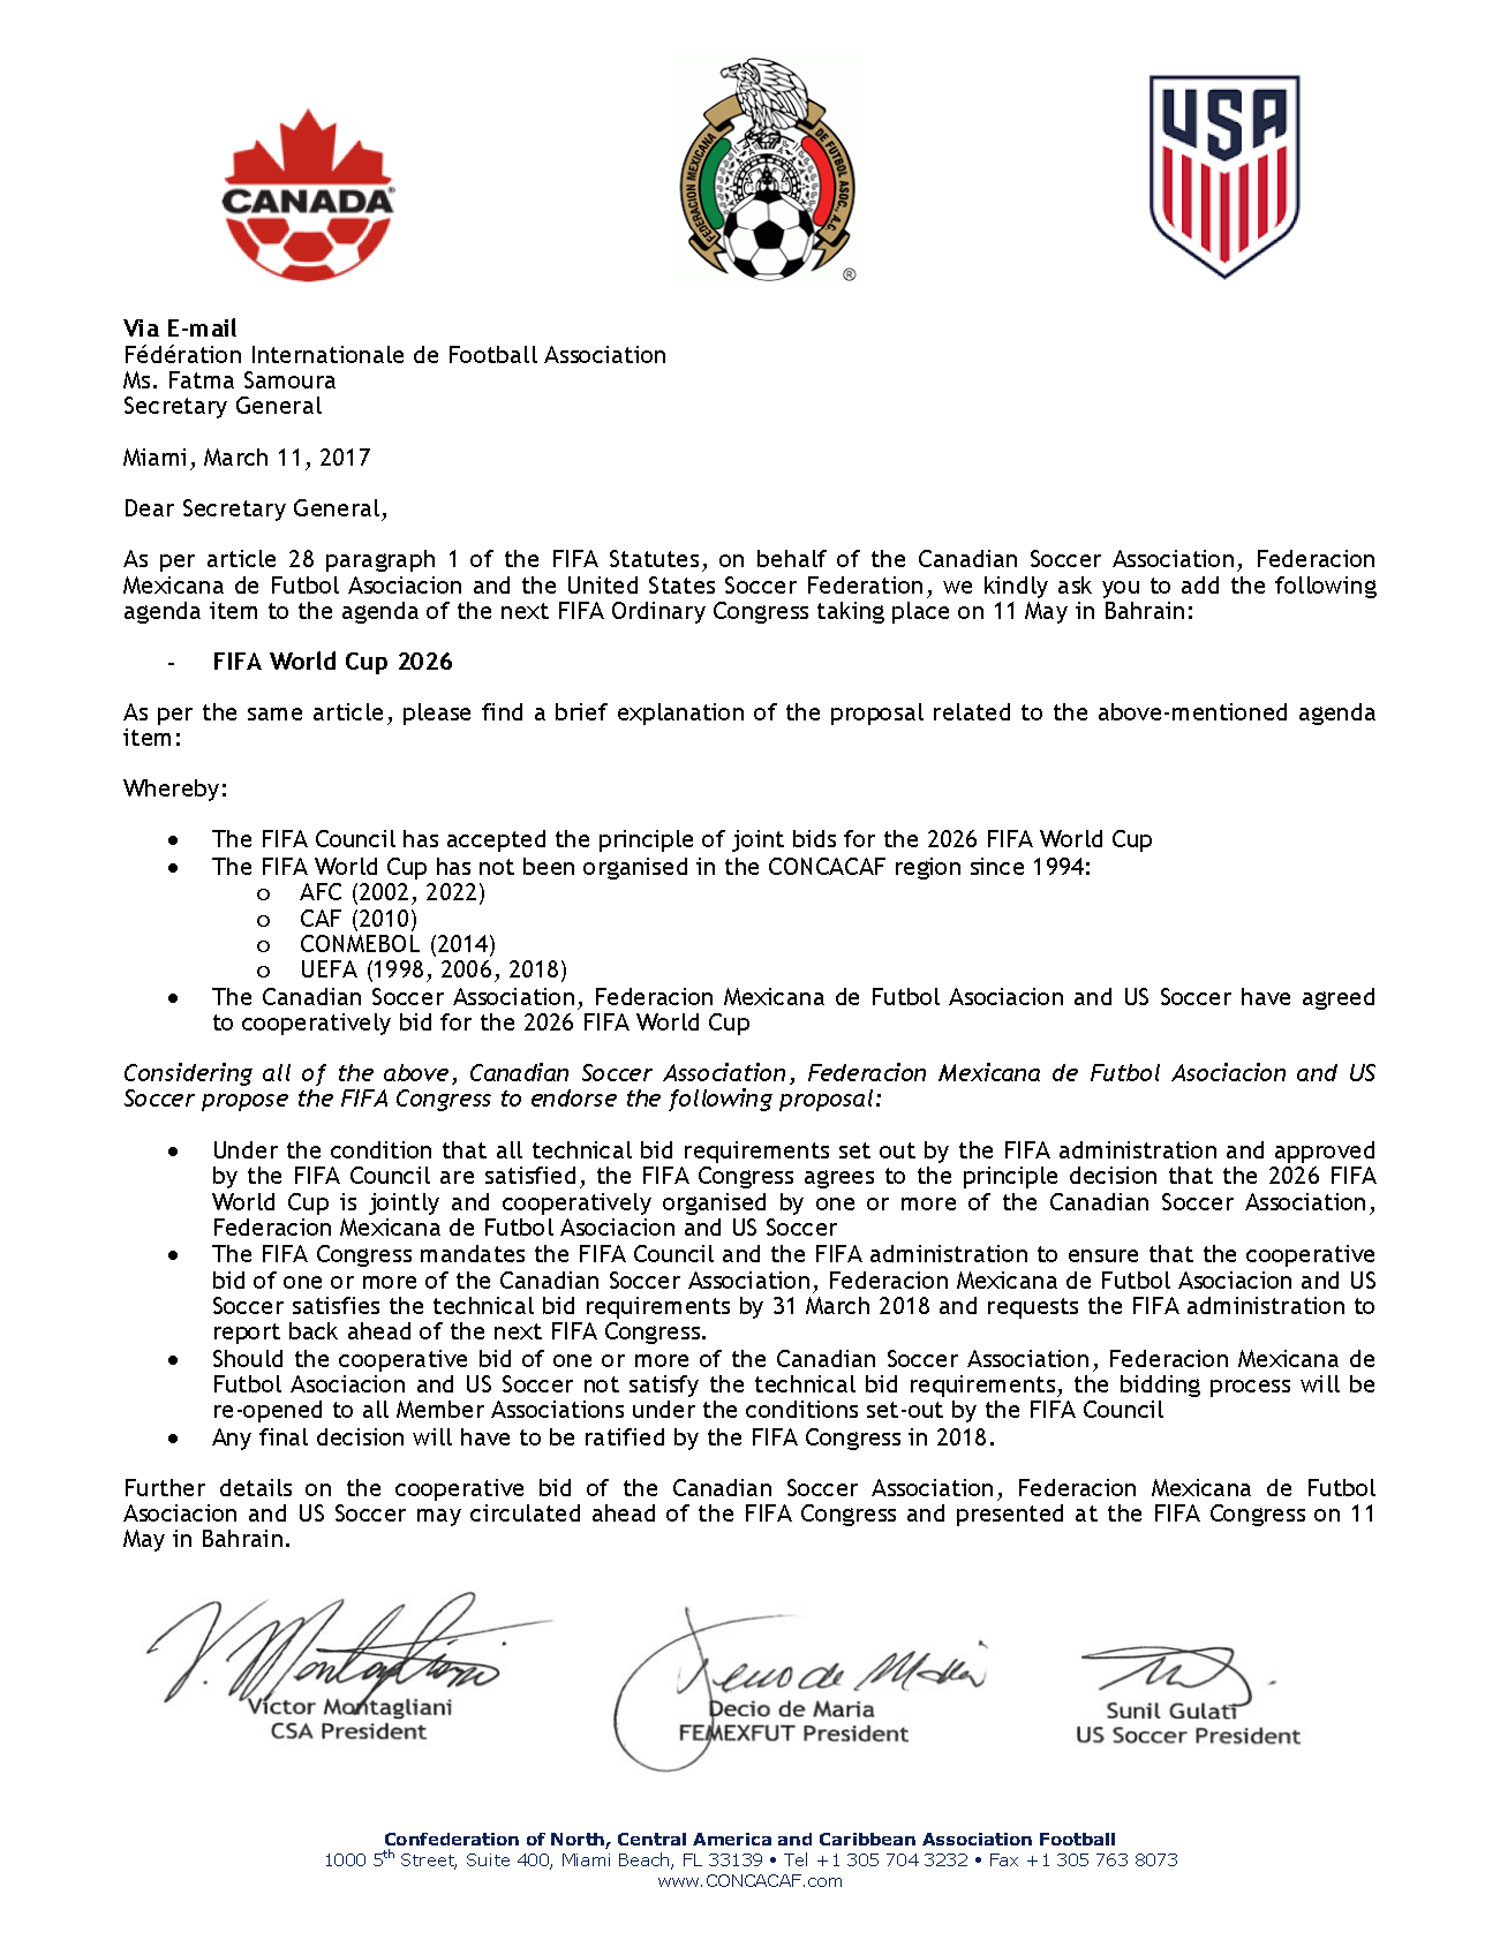 Canada, USA, Mexico send a letter to FIFA asking to fast-track World Cup 2026 bid process